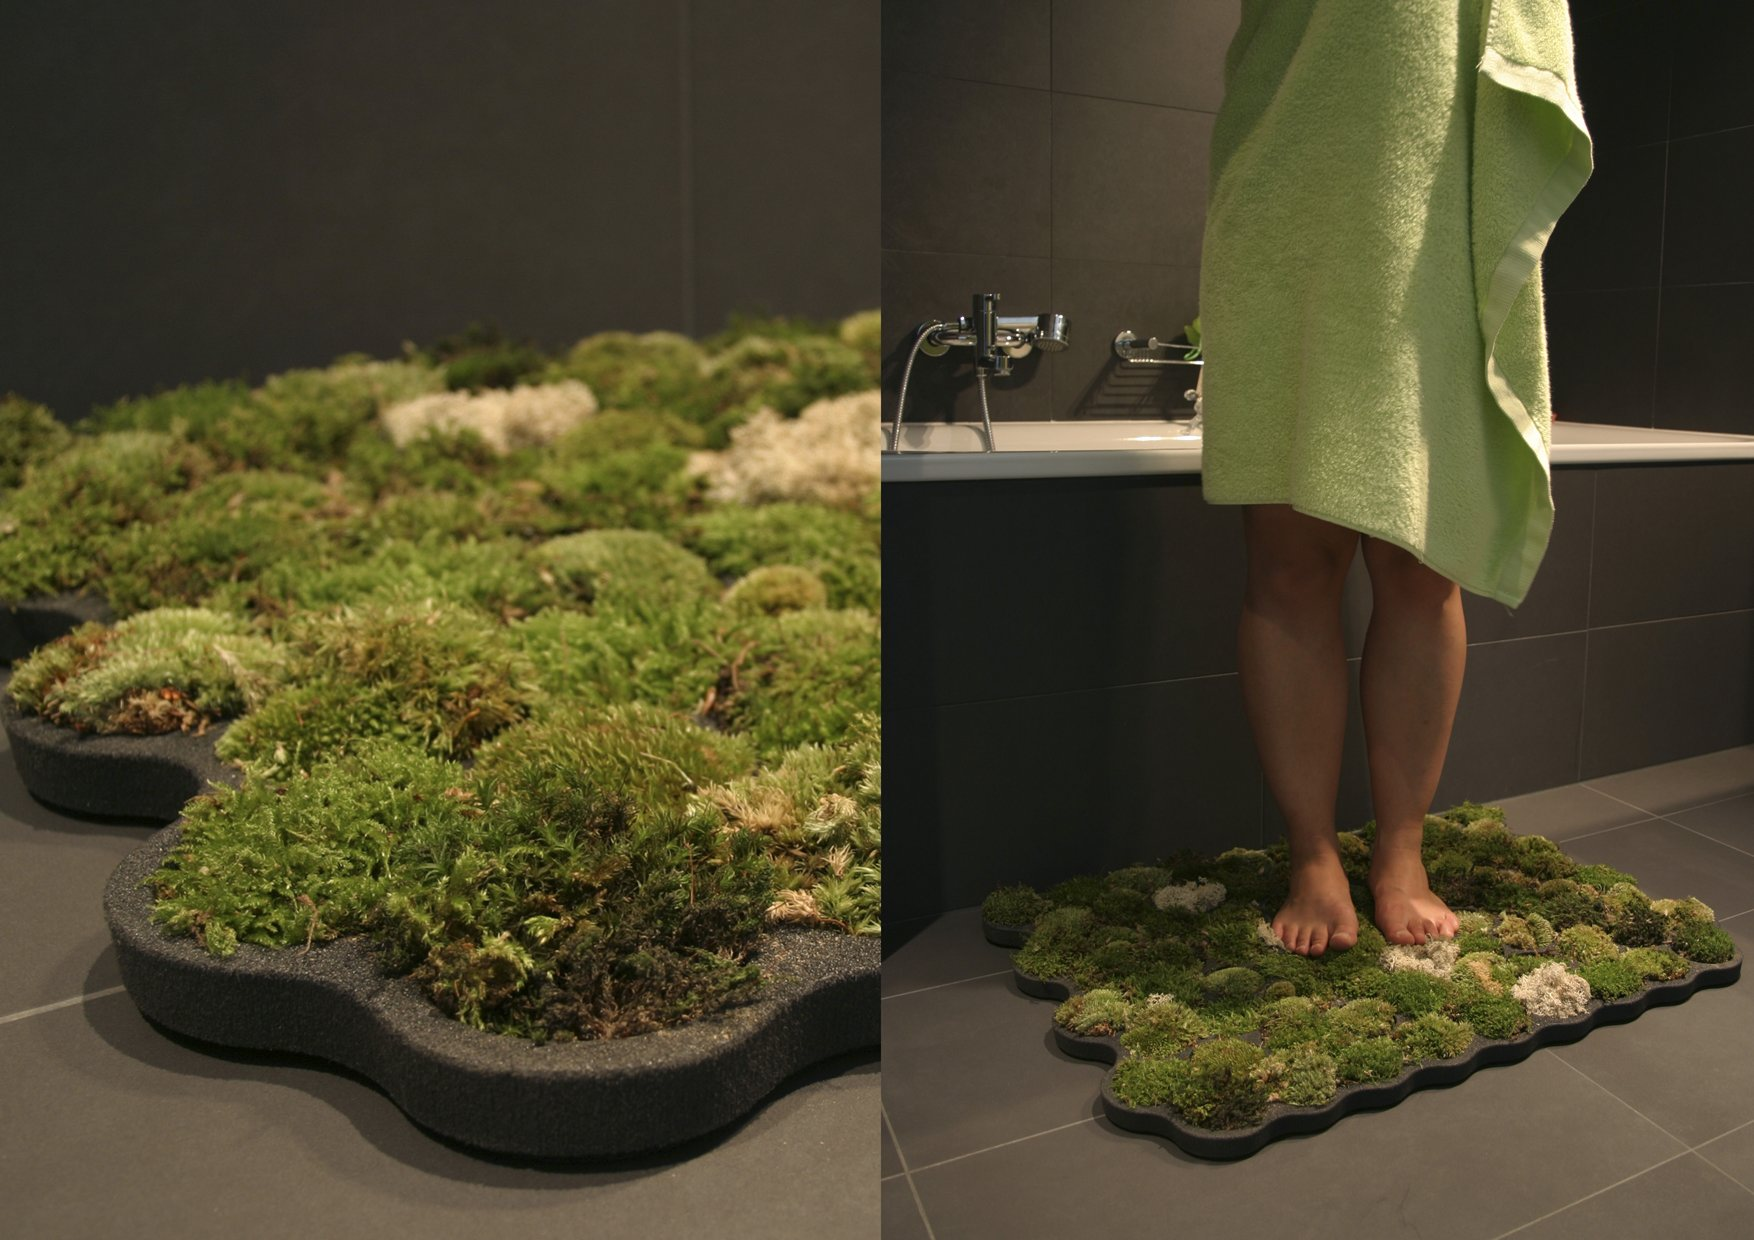 diy-bath-mat-7